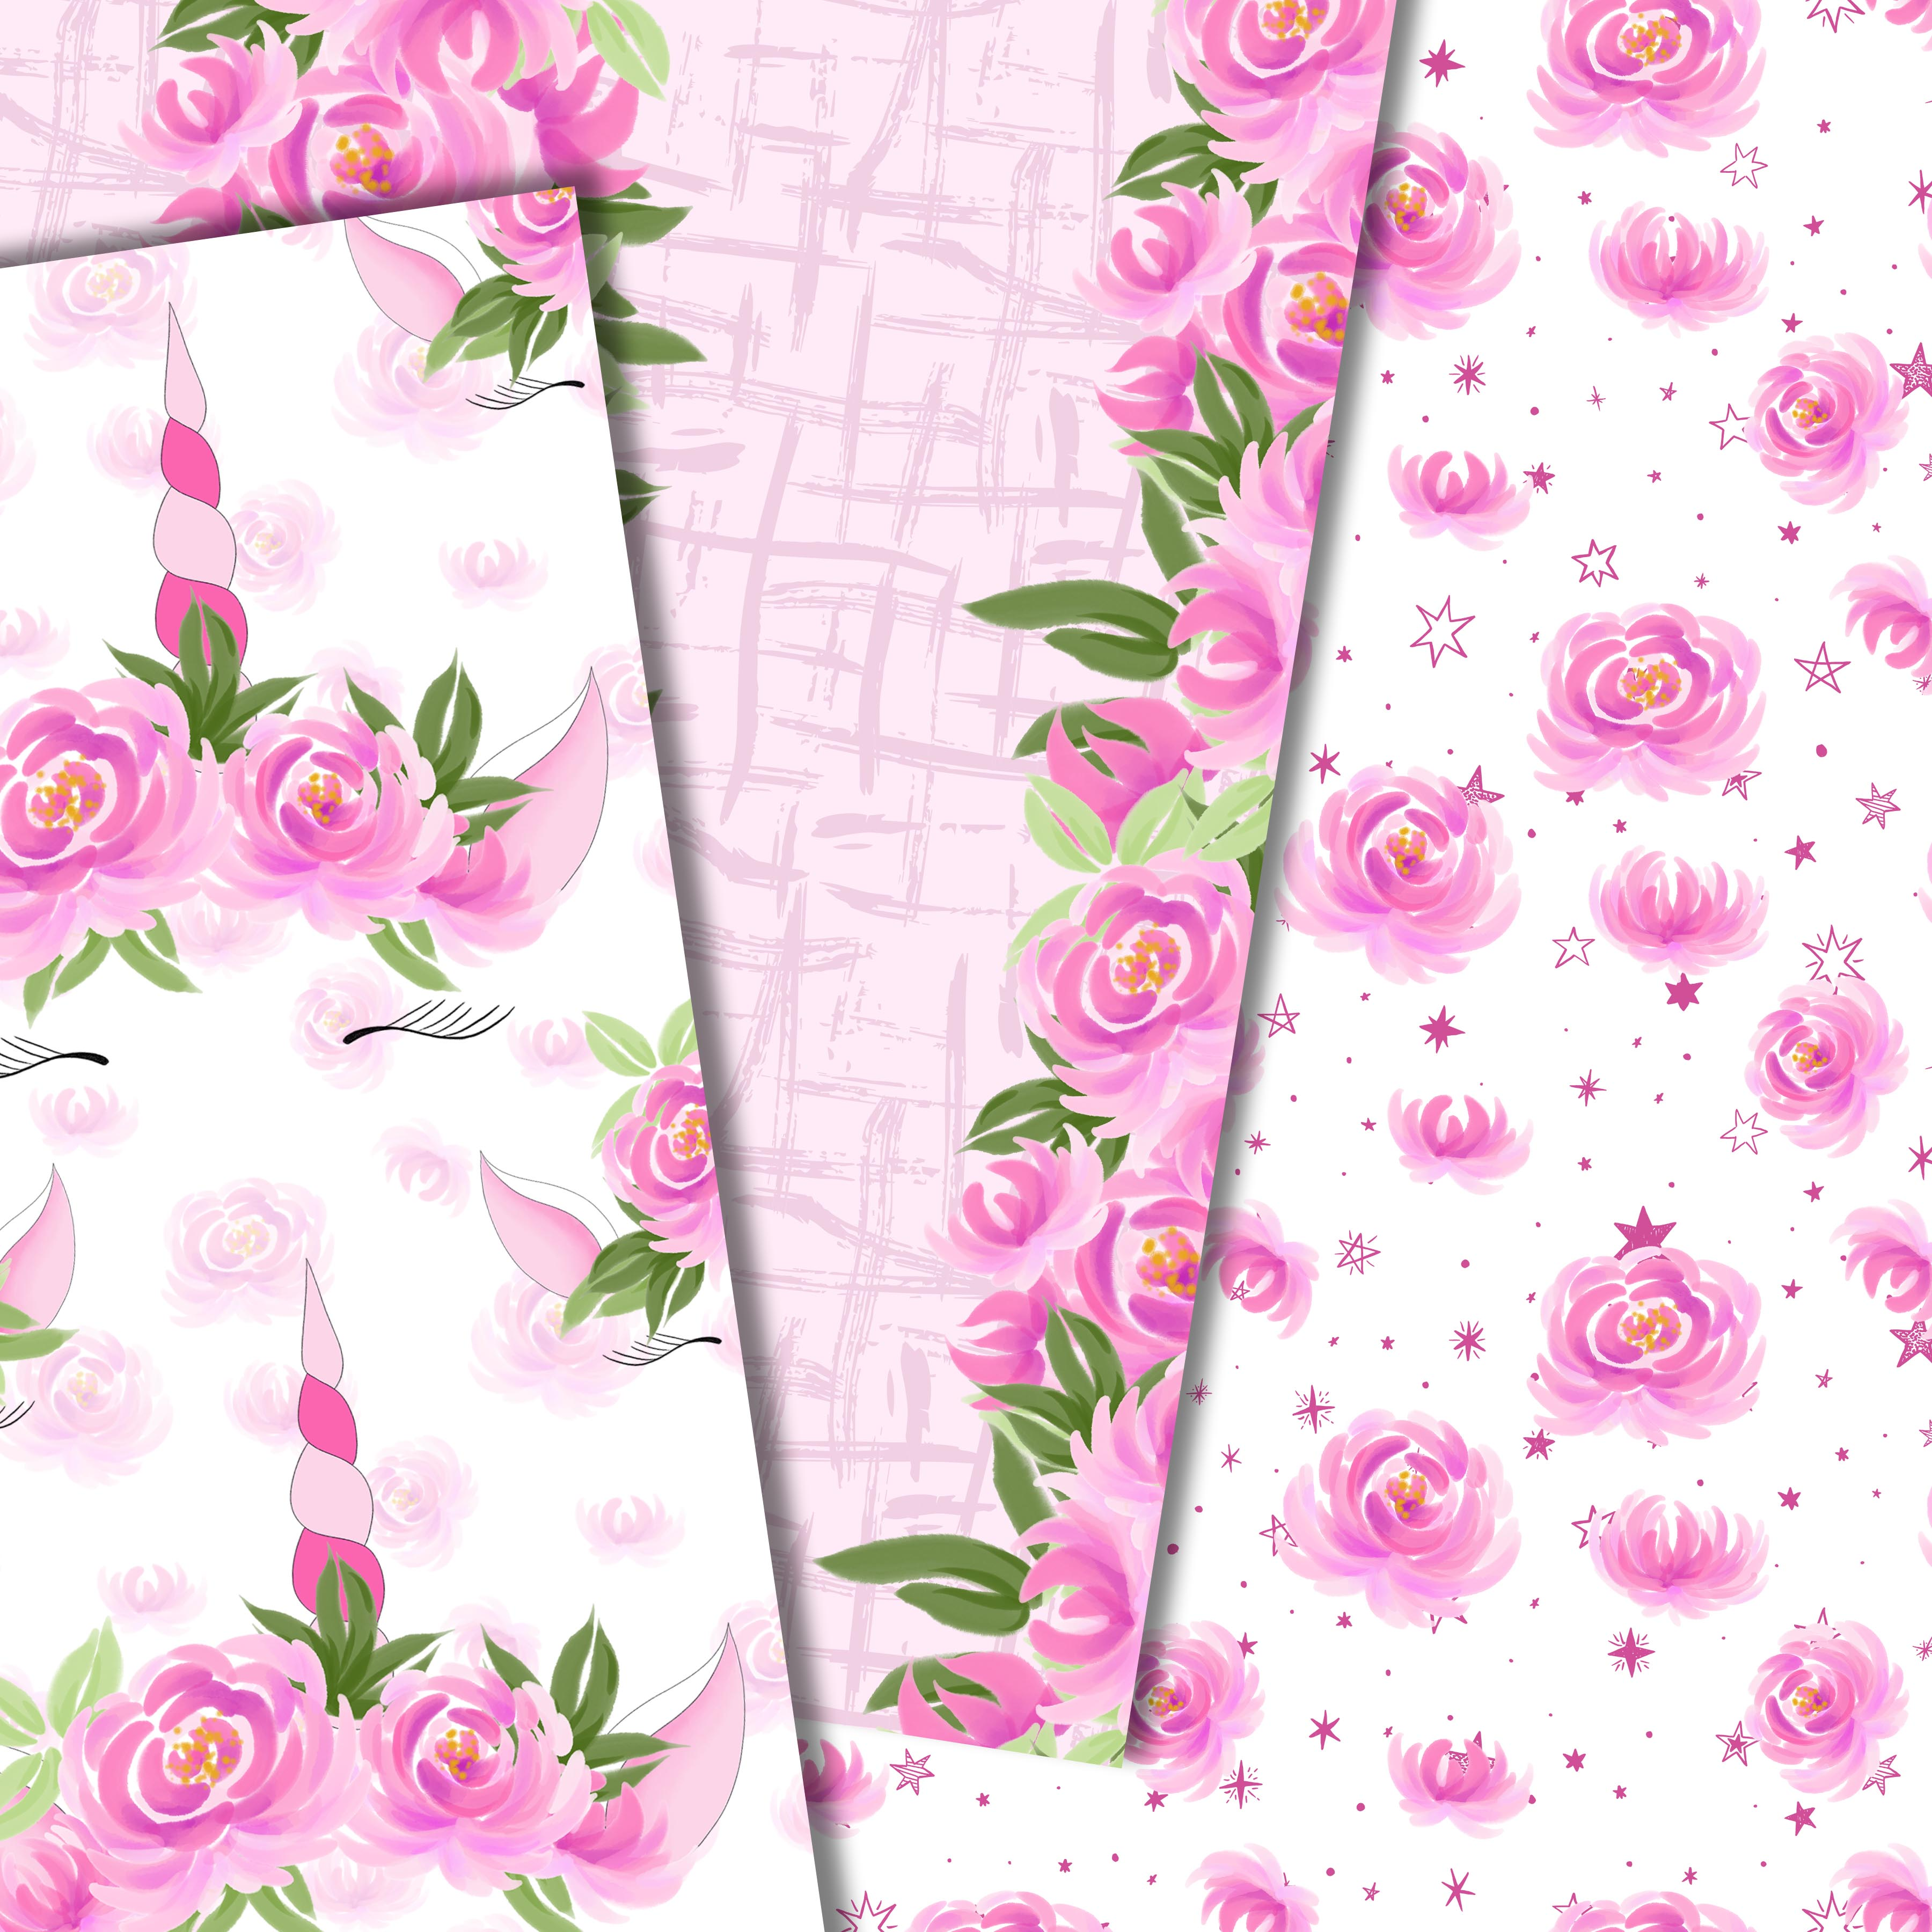 Unicorns and flowers in pink example image 3